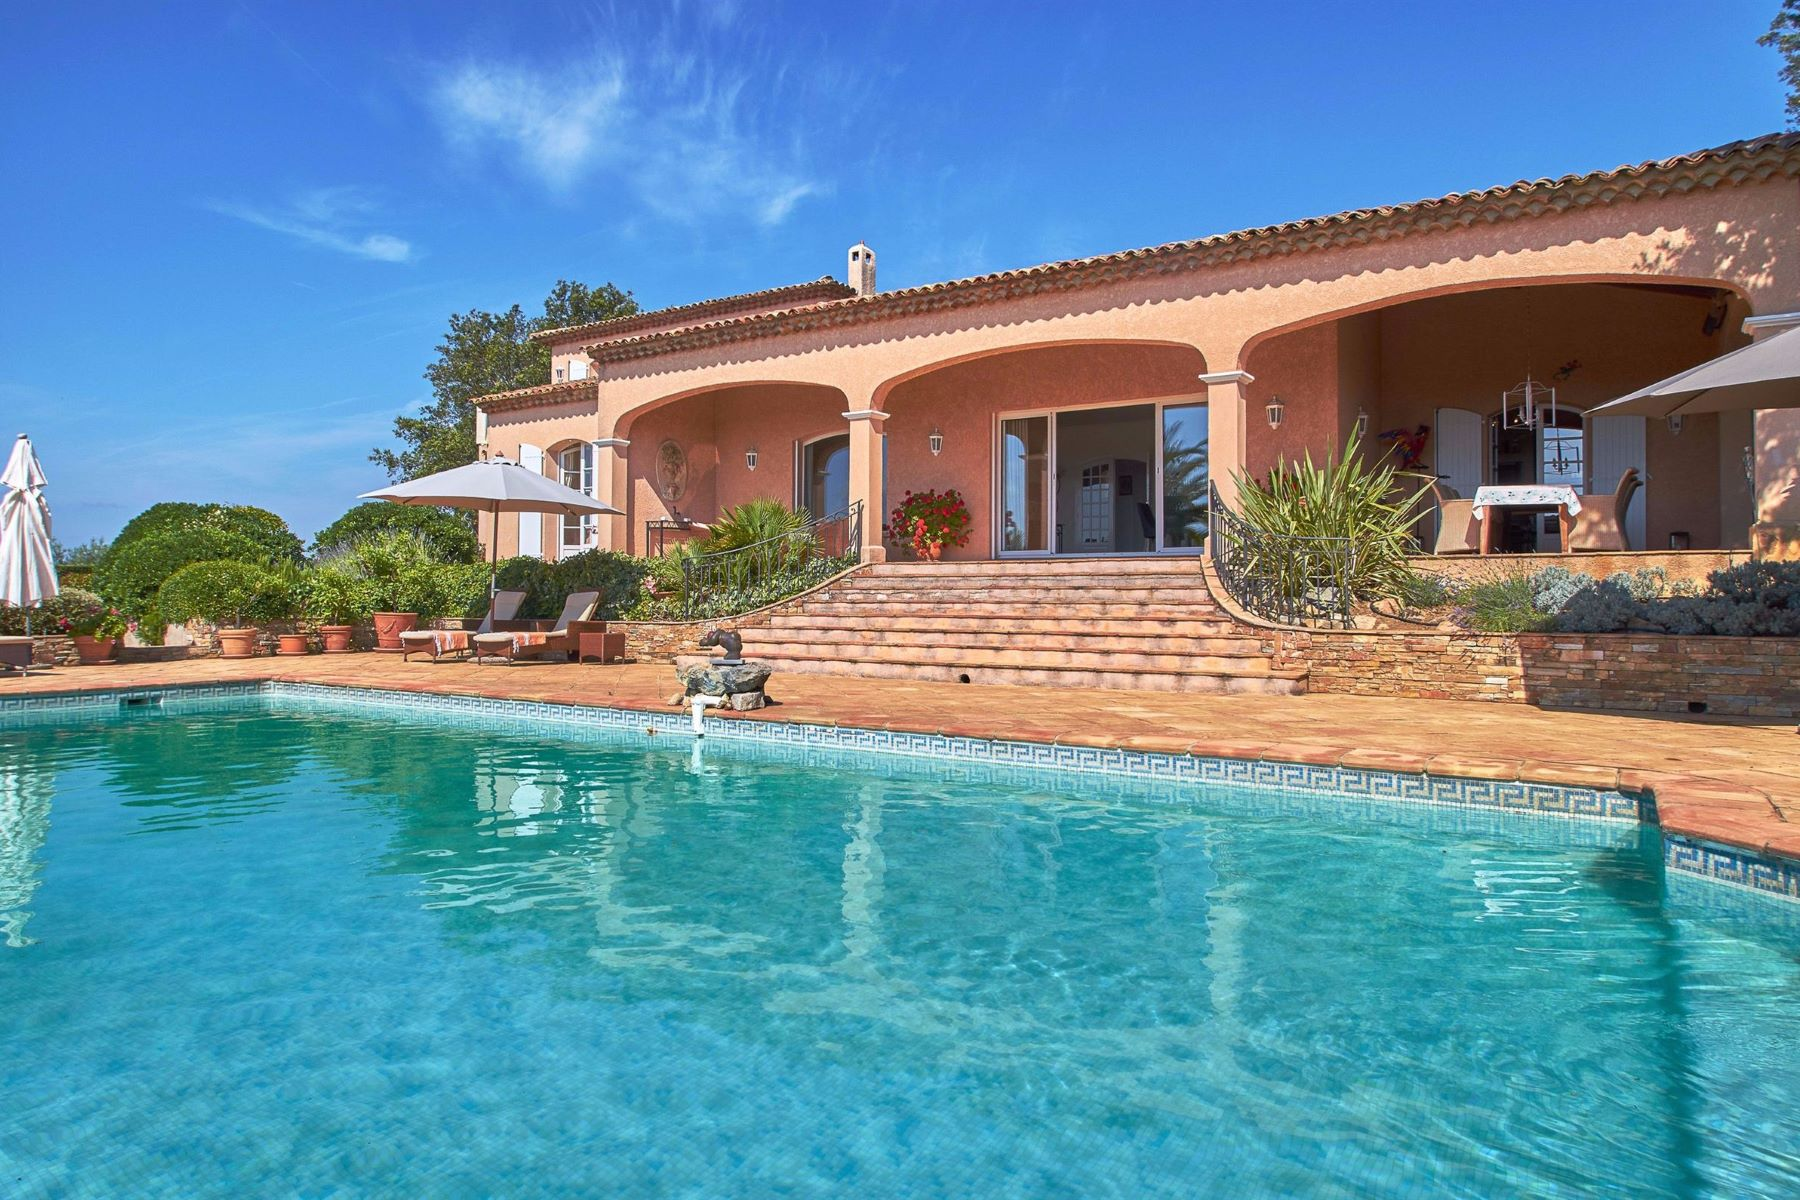 Single Family Homes por un Venta en Mediterranean-style villa for sale in Grimaud, sea views Grimaud, Provincia - Alpes - Costa Azul 83310 Francia